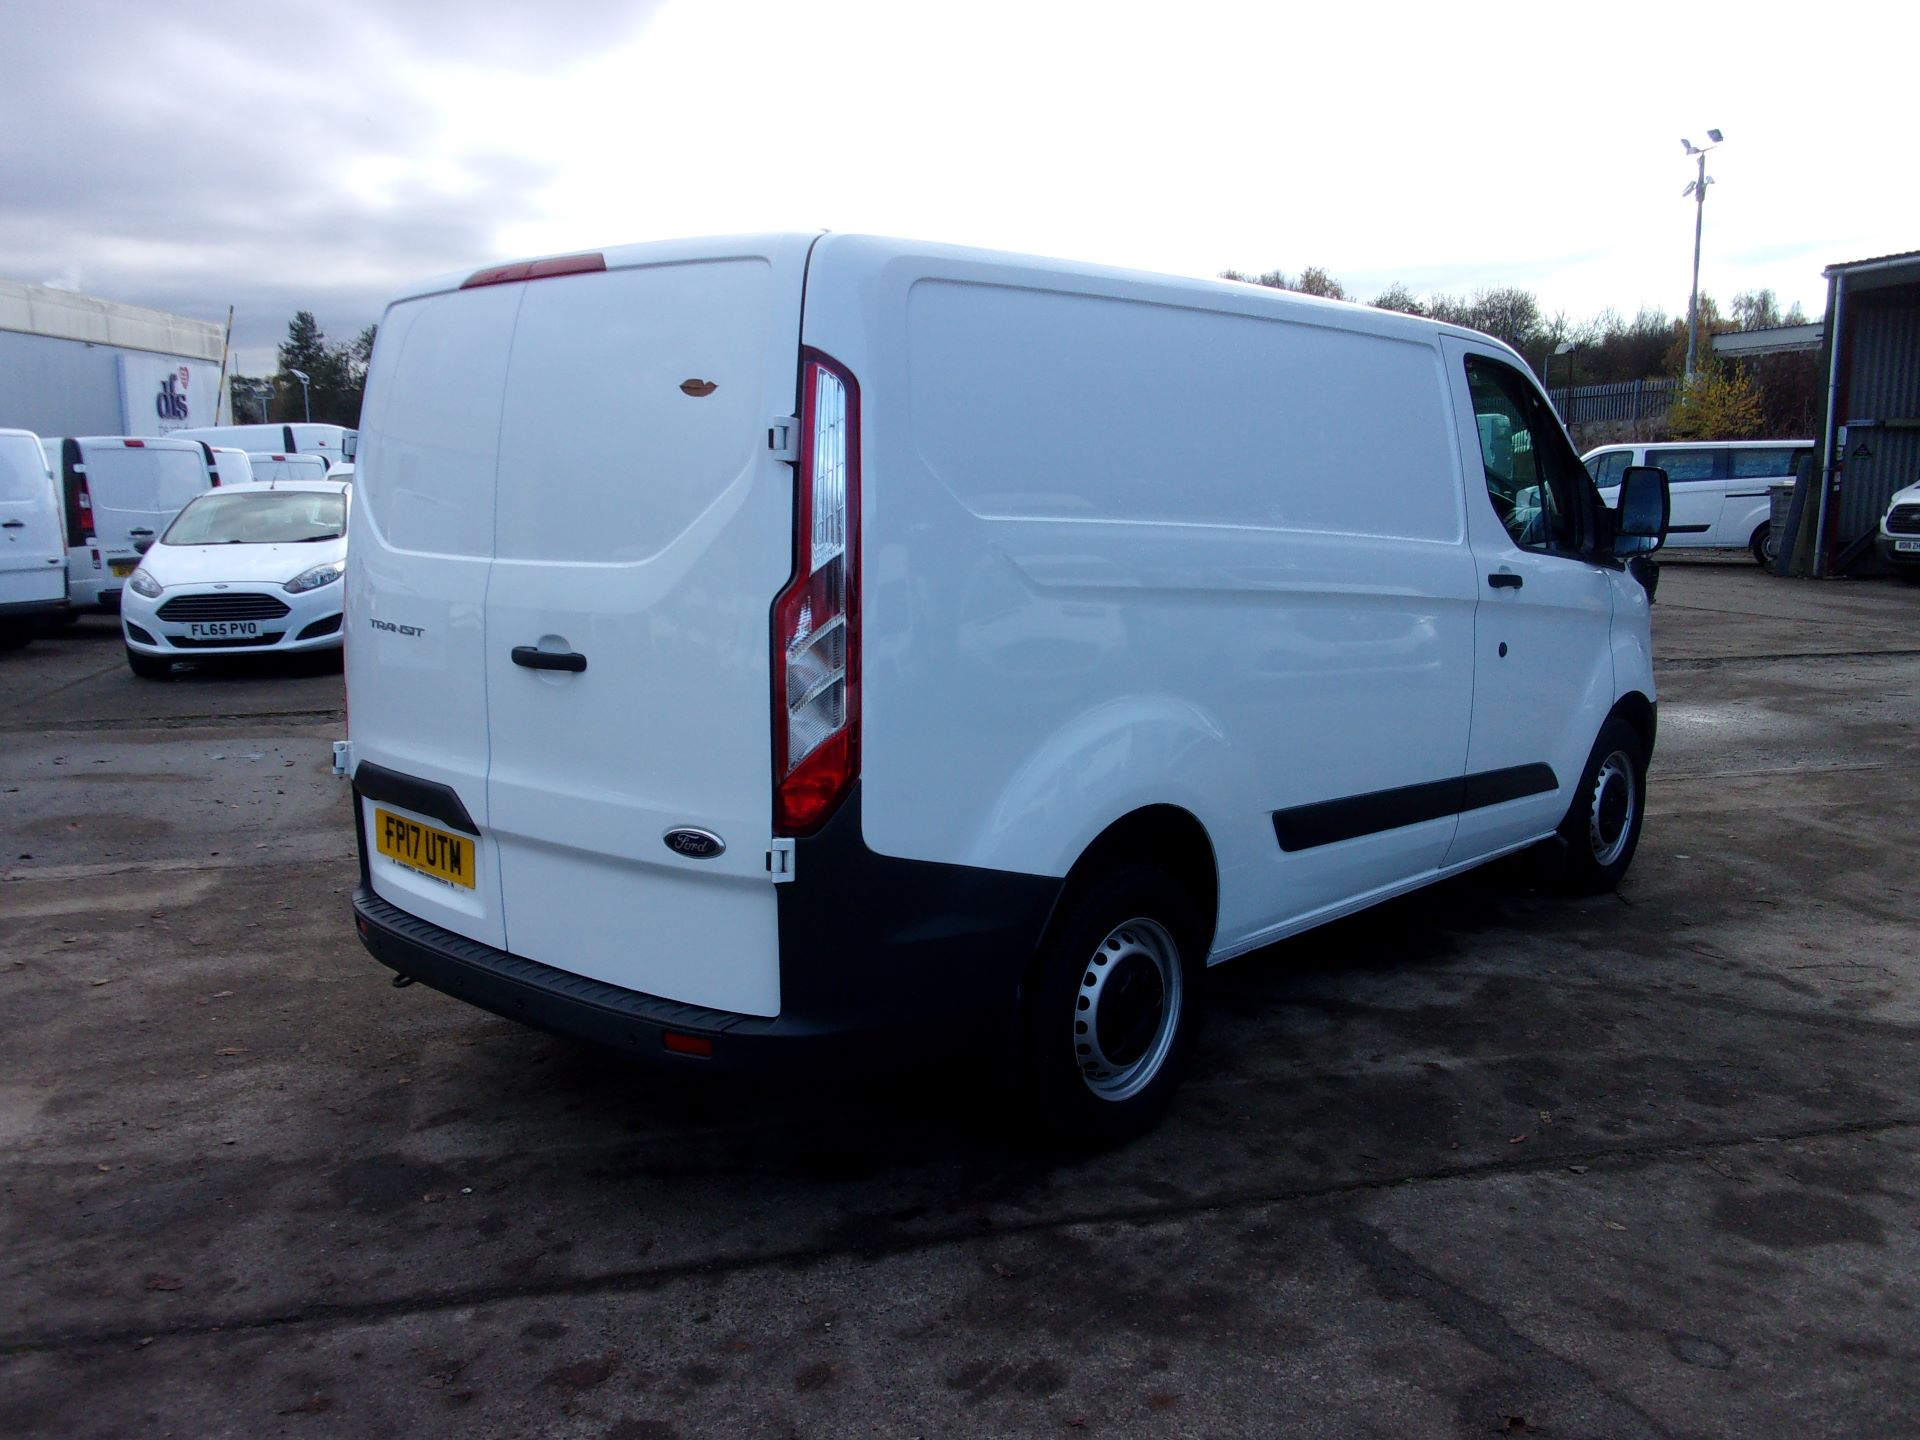 2017 Ford Transit Custom 290 L1 DIESEL FWD 2.0 TDCI 105PS LOW ROOF VAN EURO 6 *LIMITED TO 70MPH* (FP17UTM) Image 9